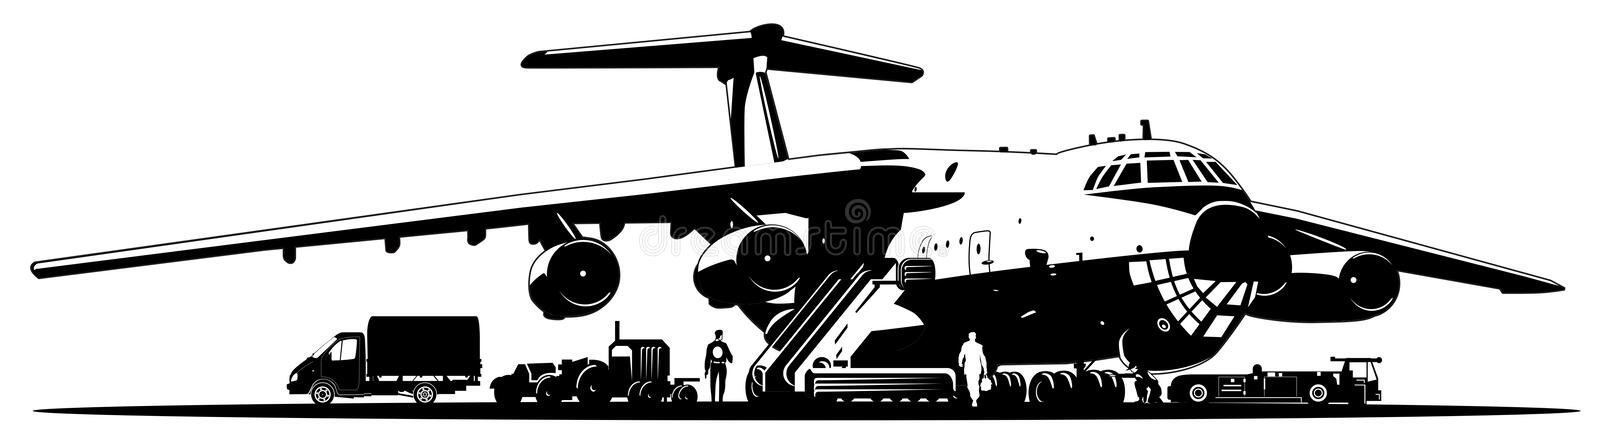 Il 76 Stock Illustrations – 7 Il 76 Stock Illustrations, Vectors & Clipart  - Dreamstime